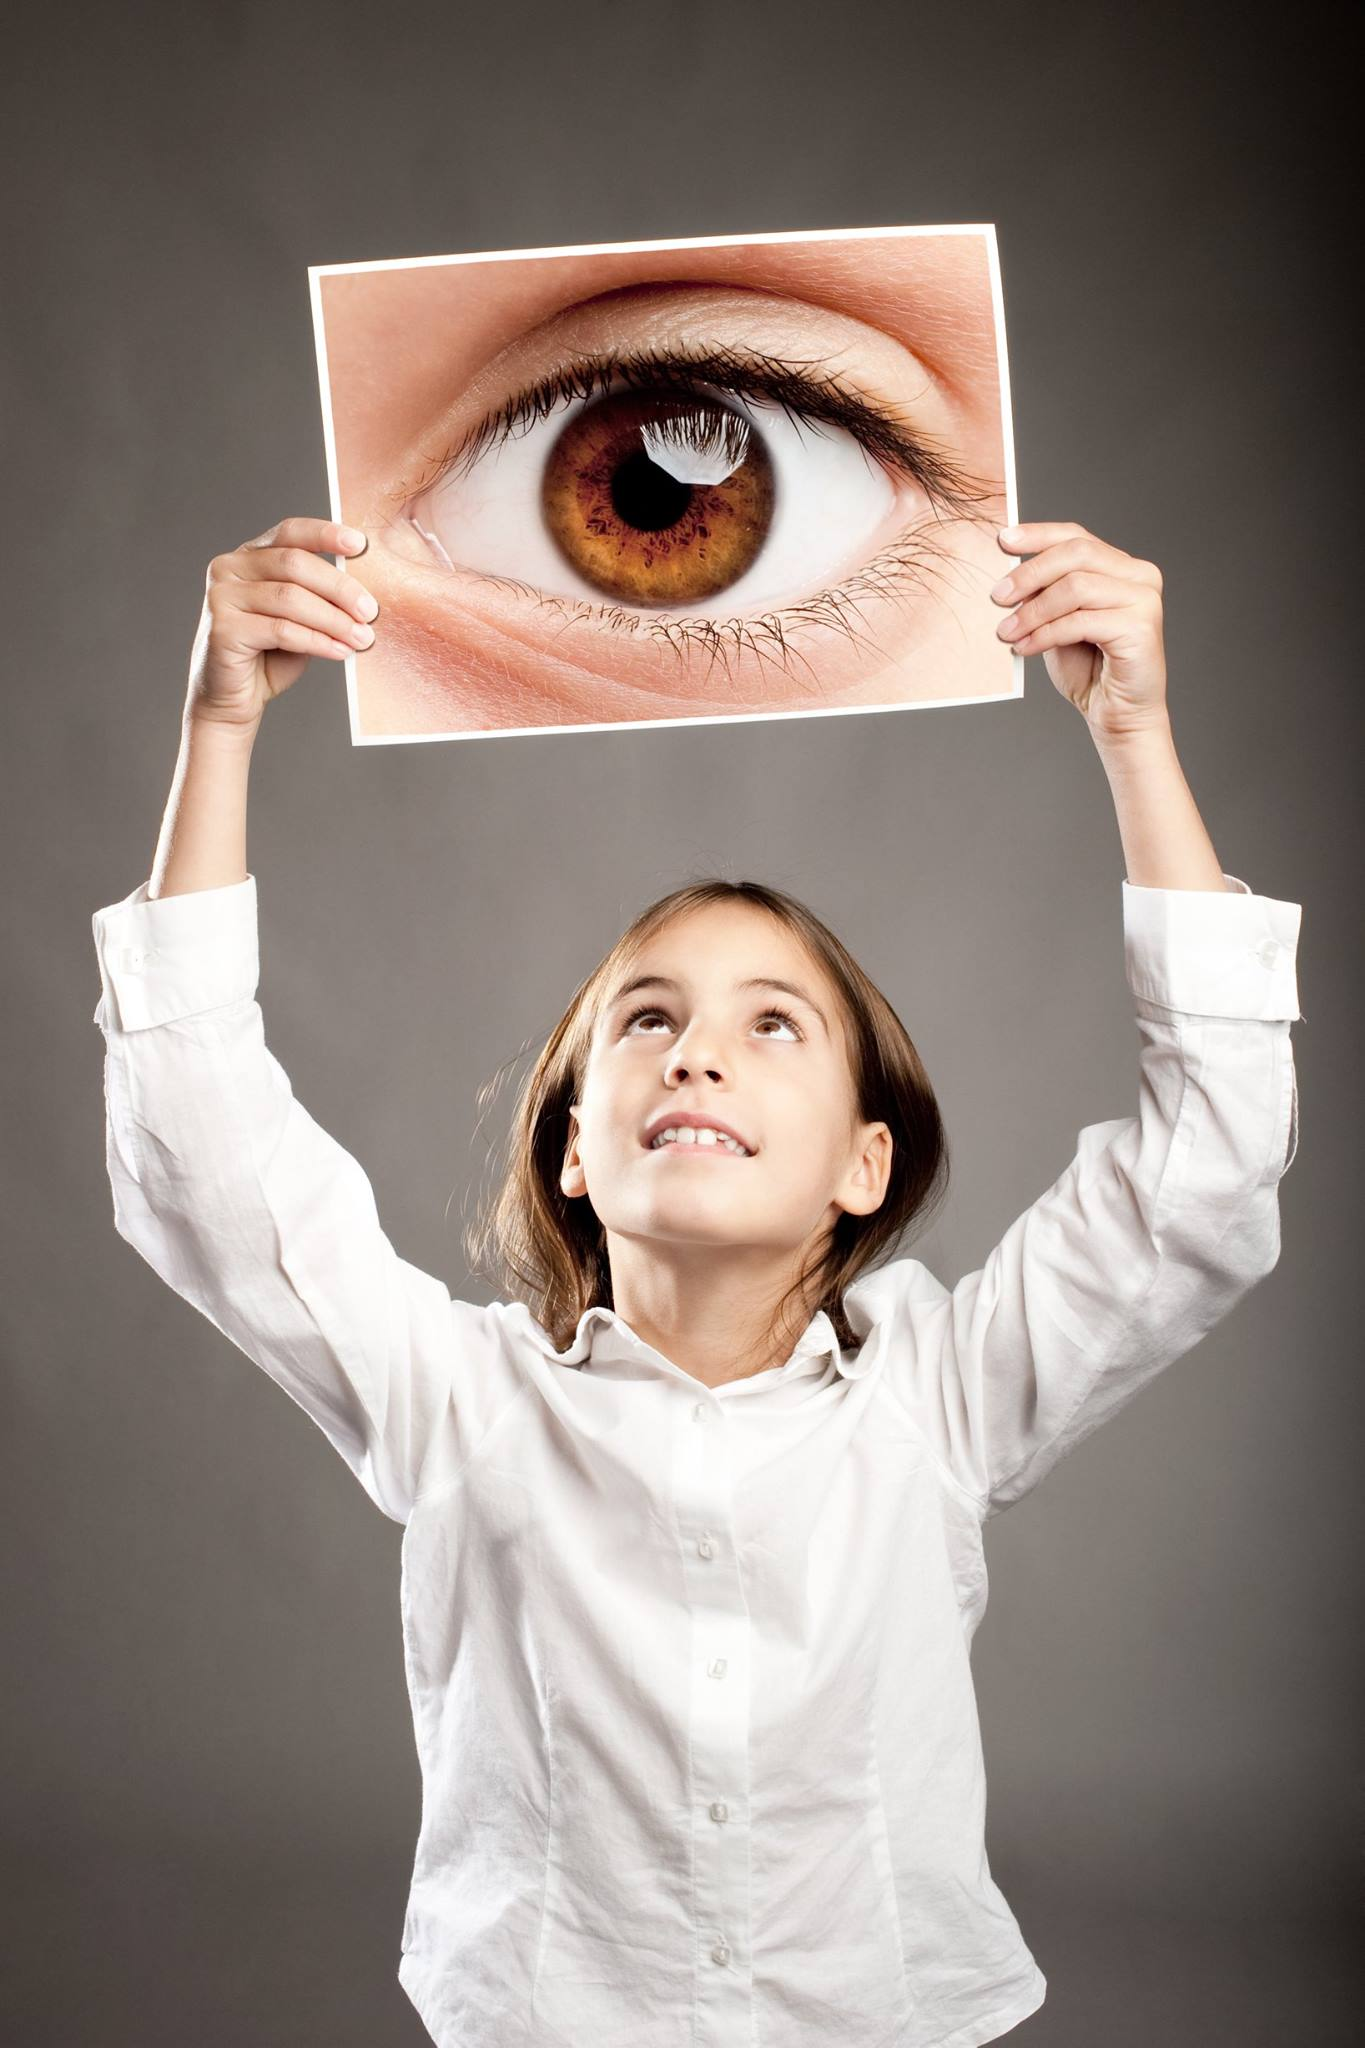 kid-girl-eye-eyesight-screening-test